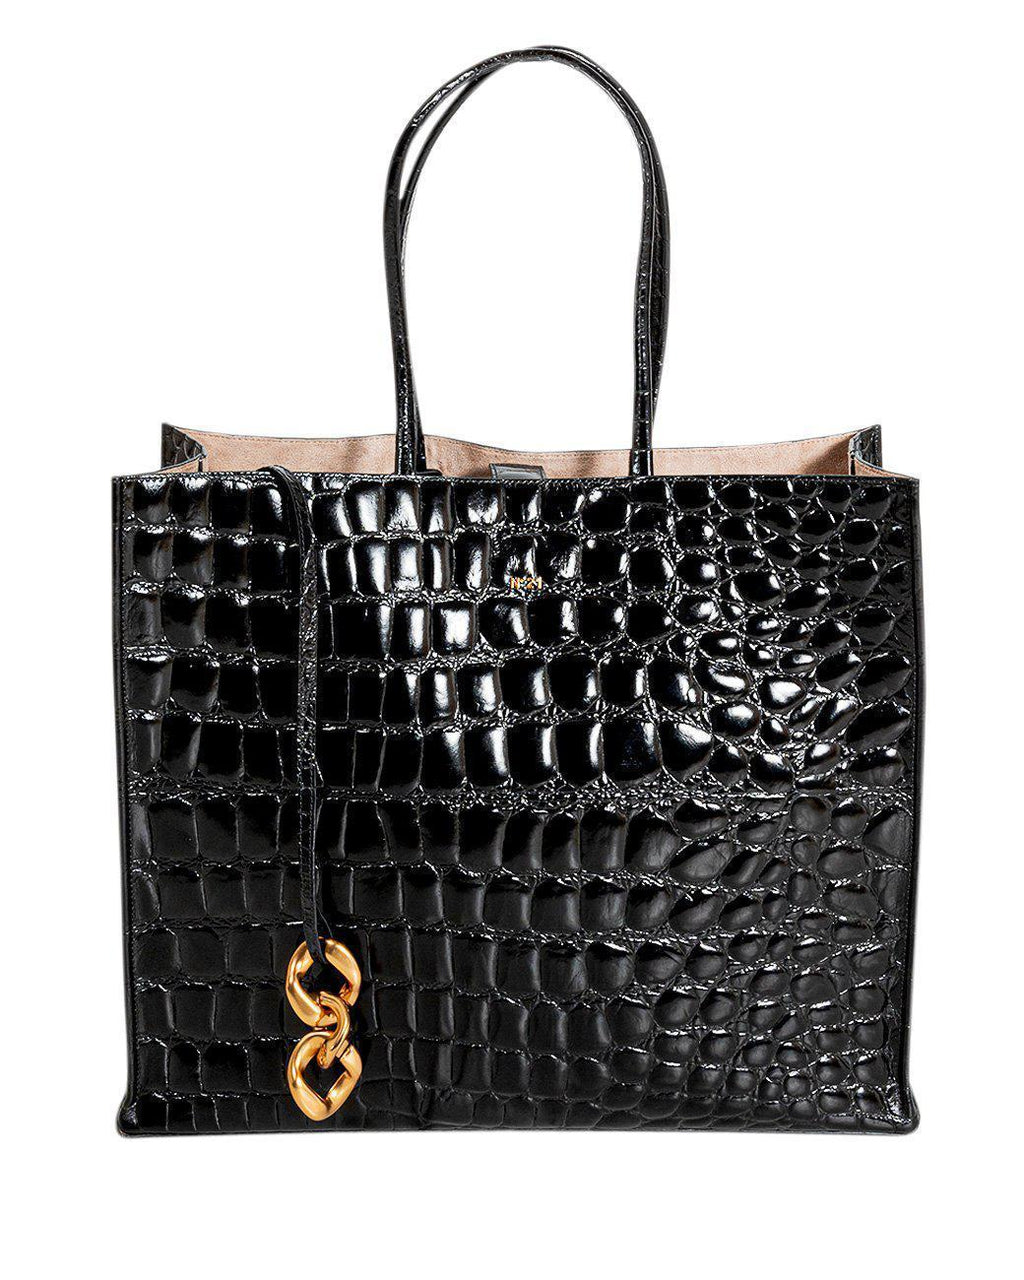 BLACK PATENT CROCODILE-EFFECT LEATHER TOTE BAG